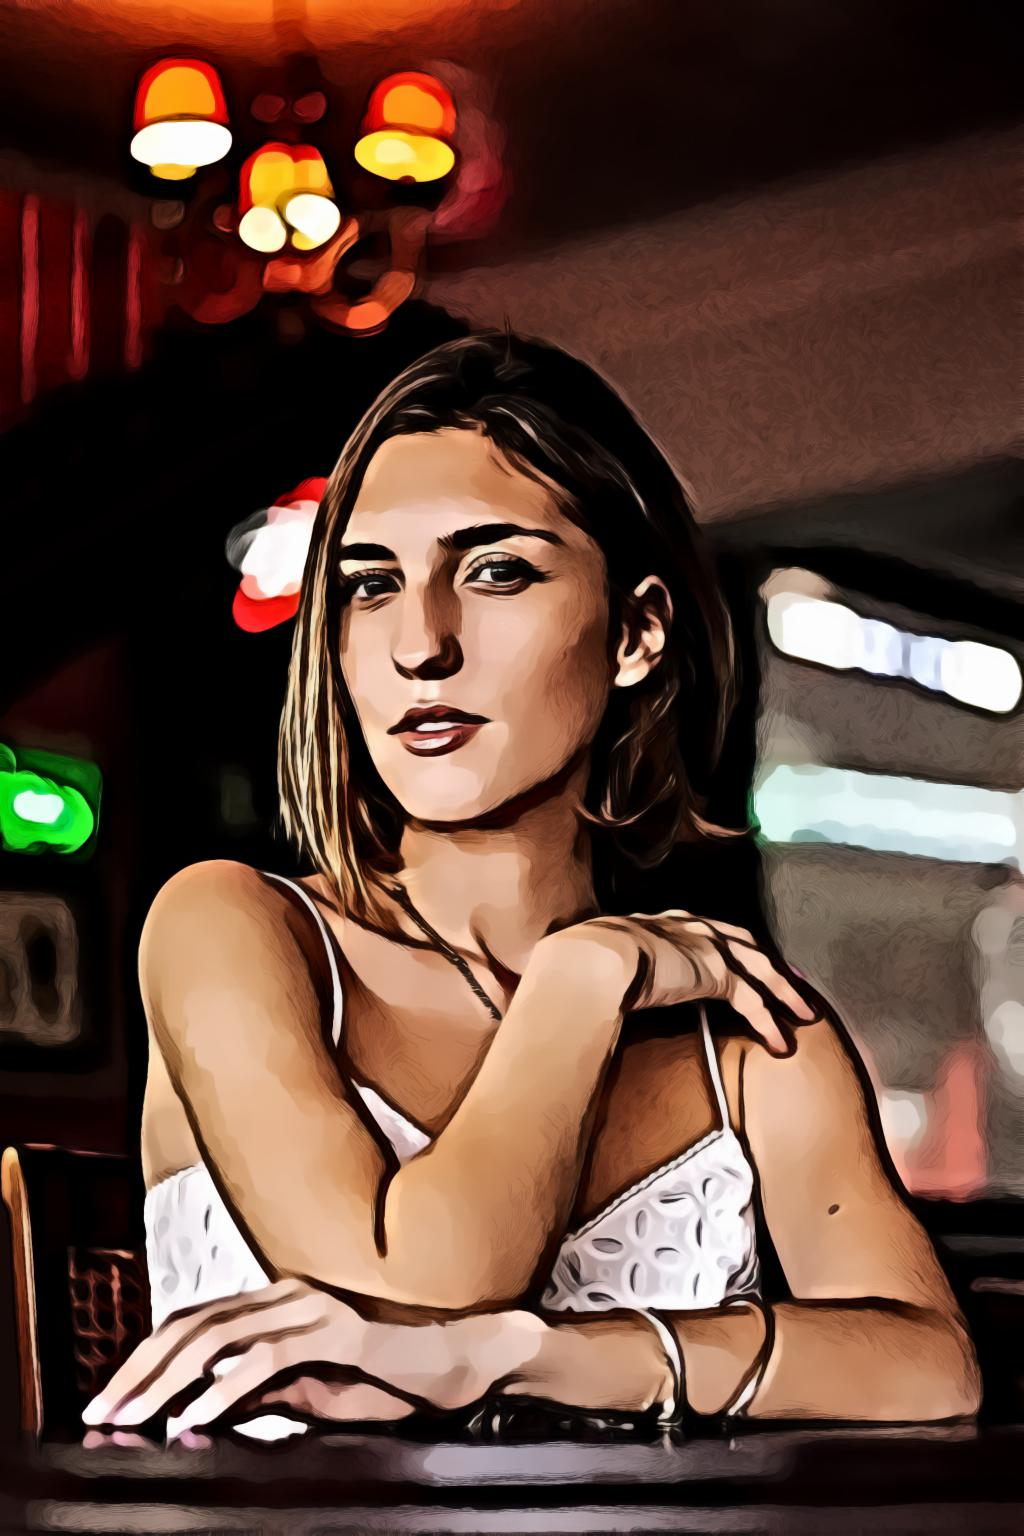 Woman wearing white spaghetti strap top siting by the table